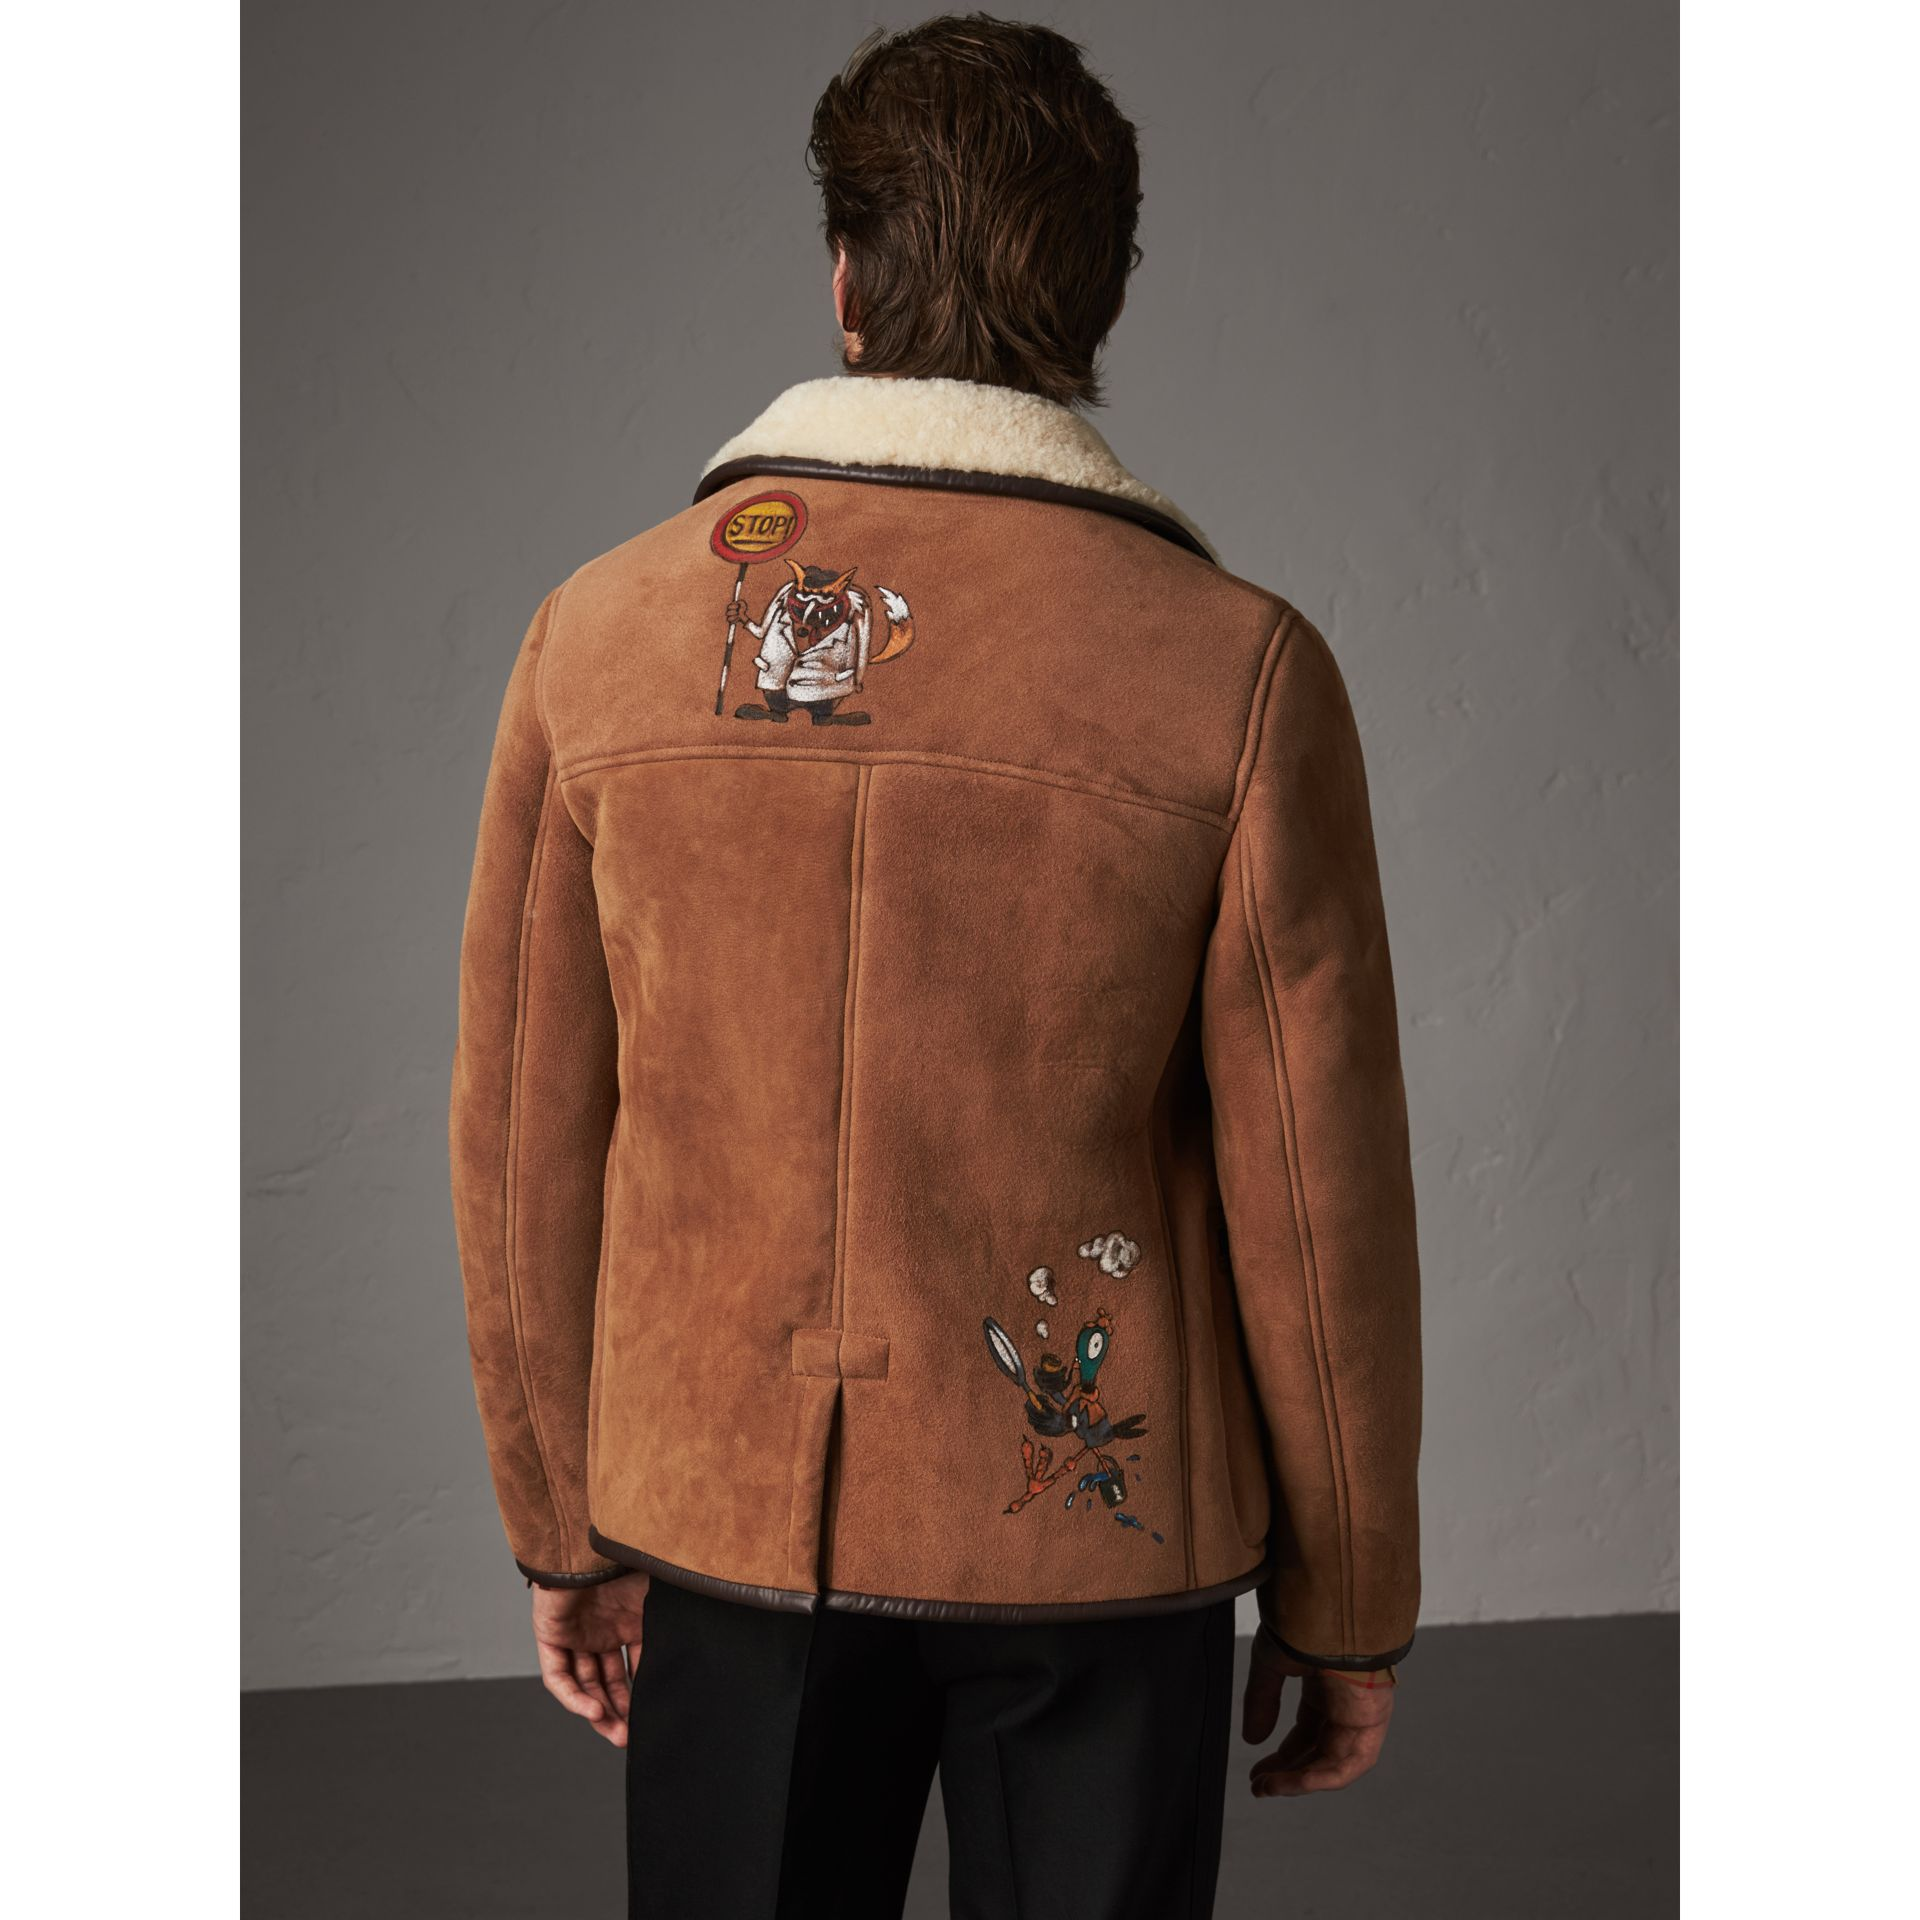 Sketch Print Shearling Jacket in Biscuit - Men | Burberry United Kingdom - gallery image 2